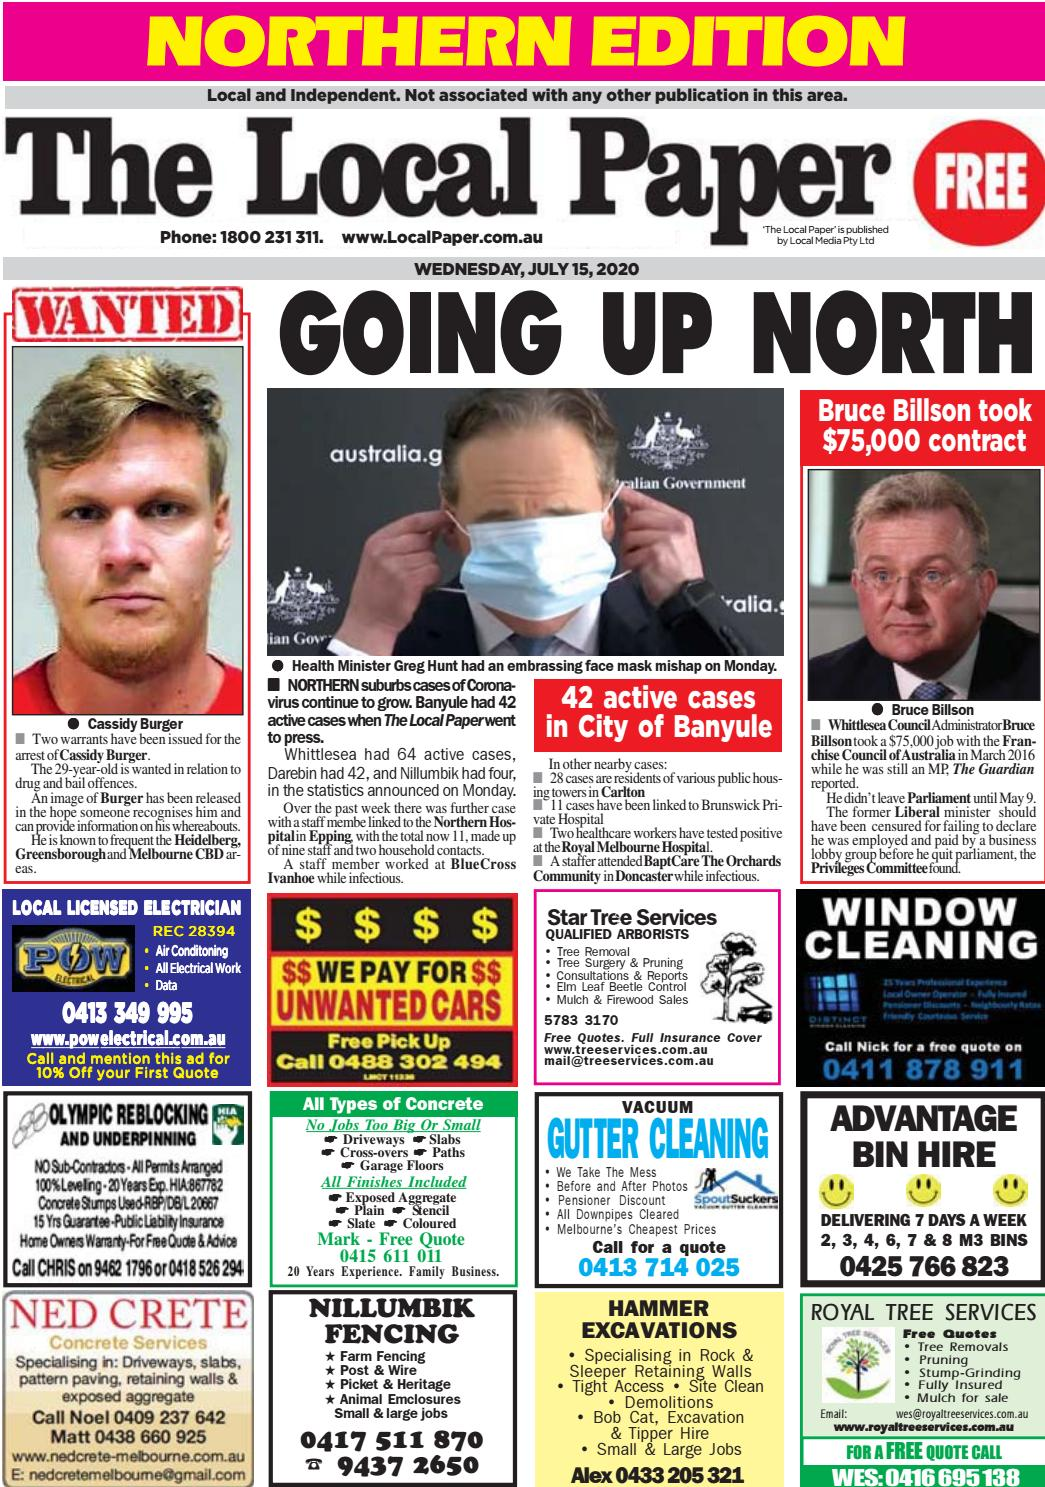 The Local Paper Northern Edition Wed Jul 15 2020 By Ash Long Issuu